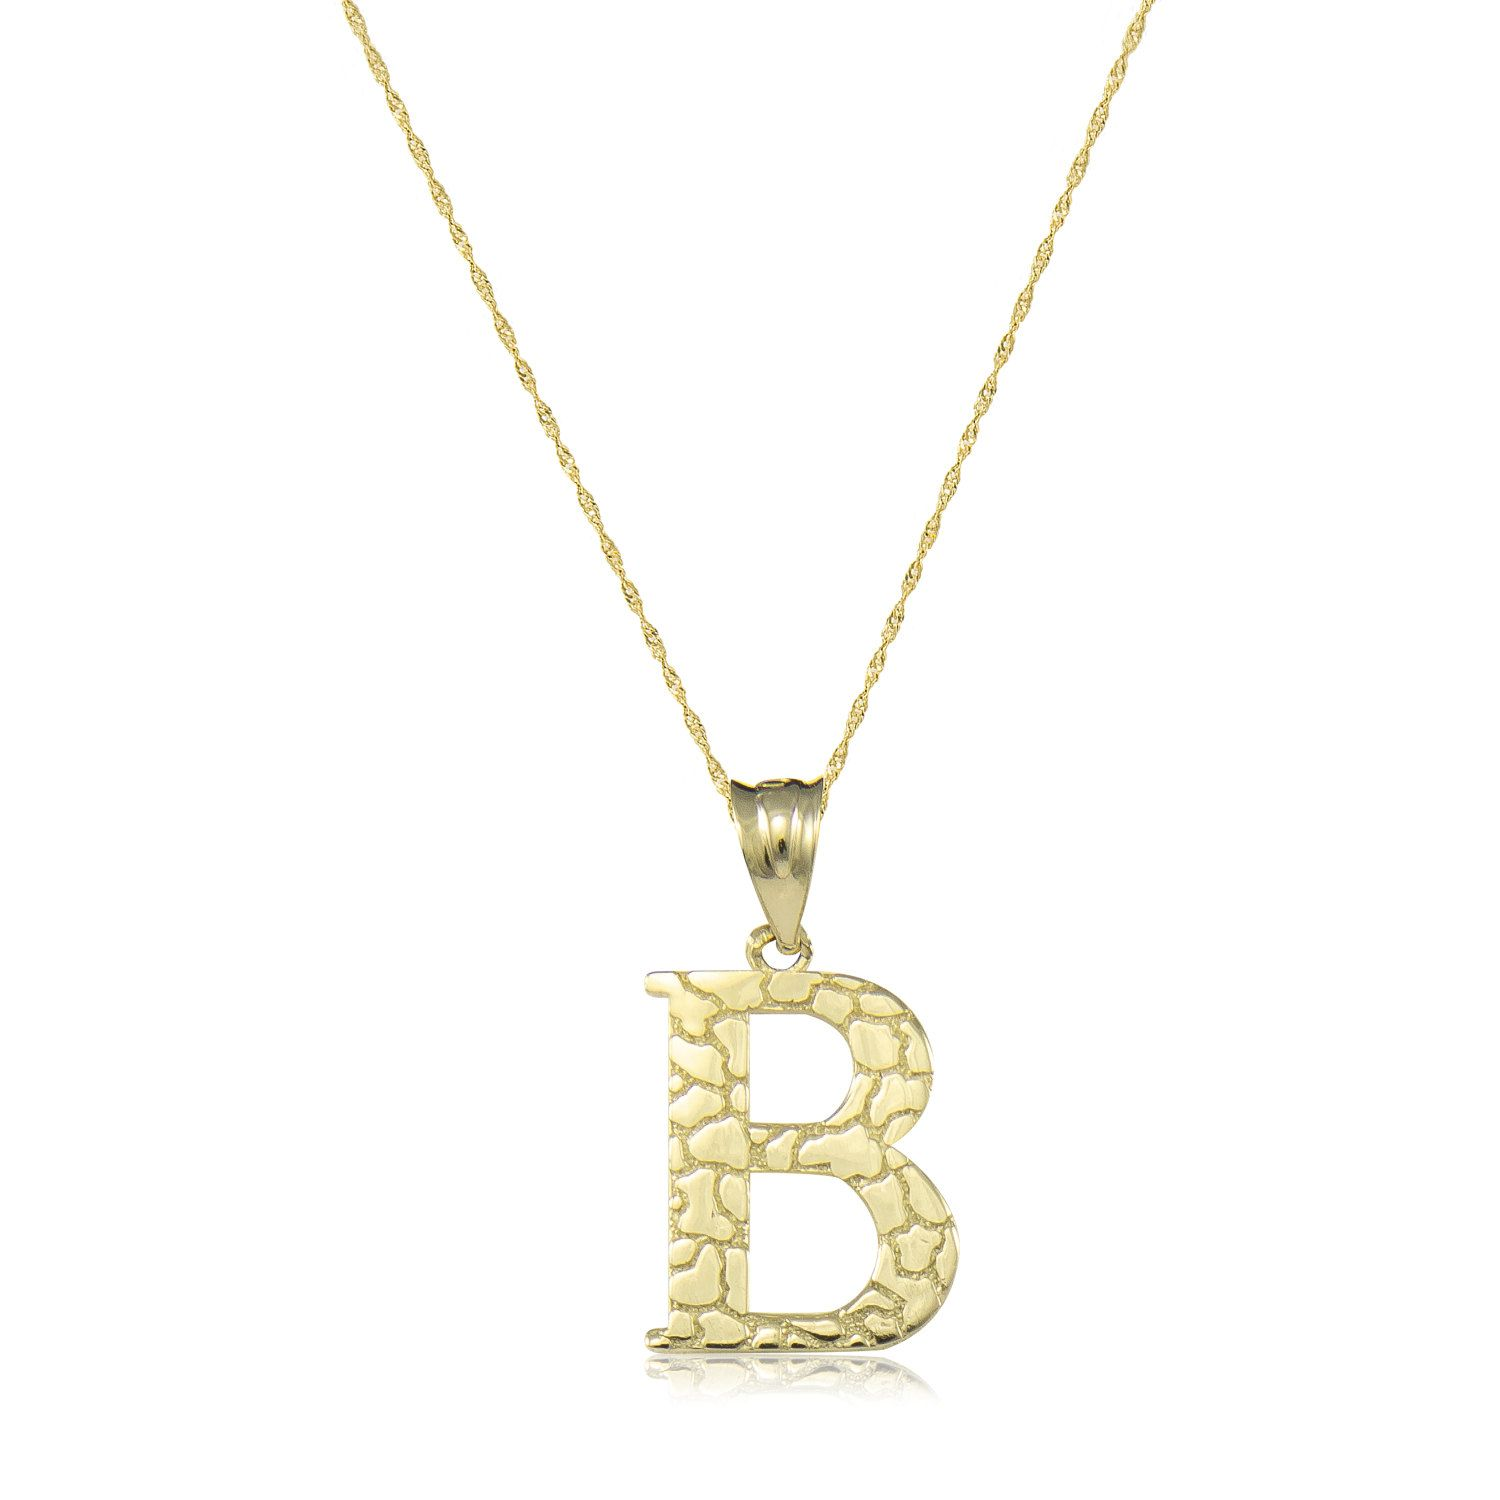 10k Solid Yellow Gold Nugget Initial Letter Necklace Pendant Singapore Chain Description Material Genu Letter Pendants Gold Nugget Custom Initial Jewelry